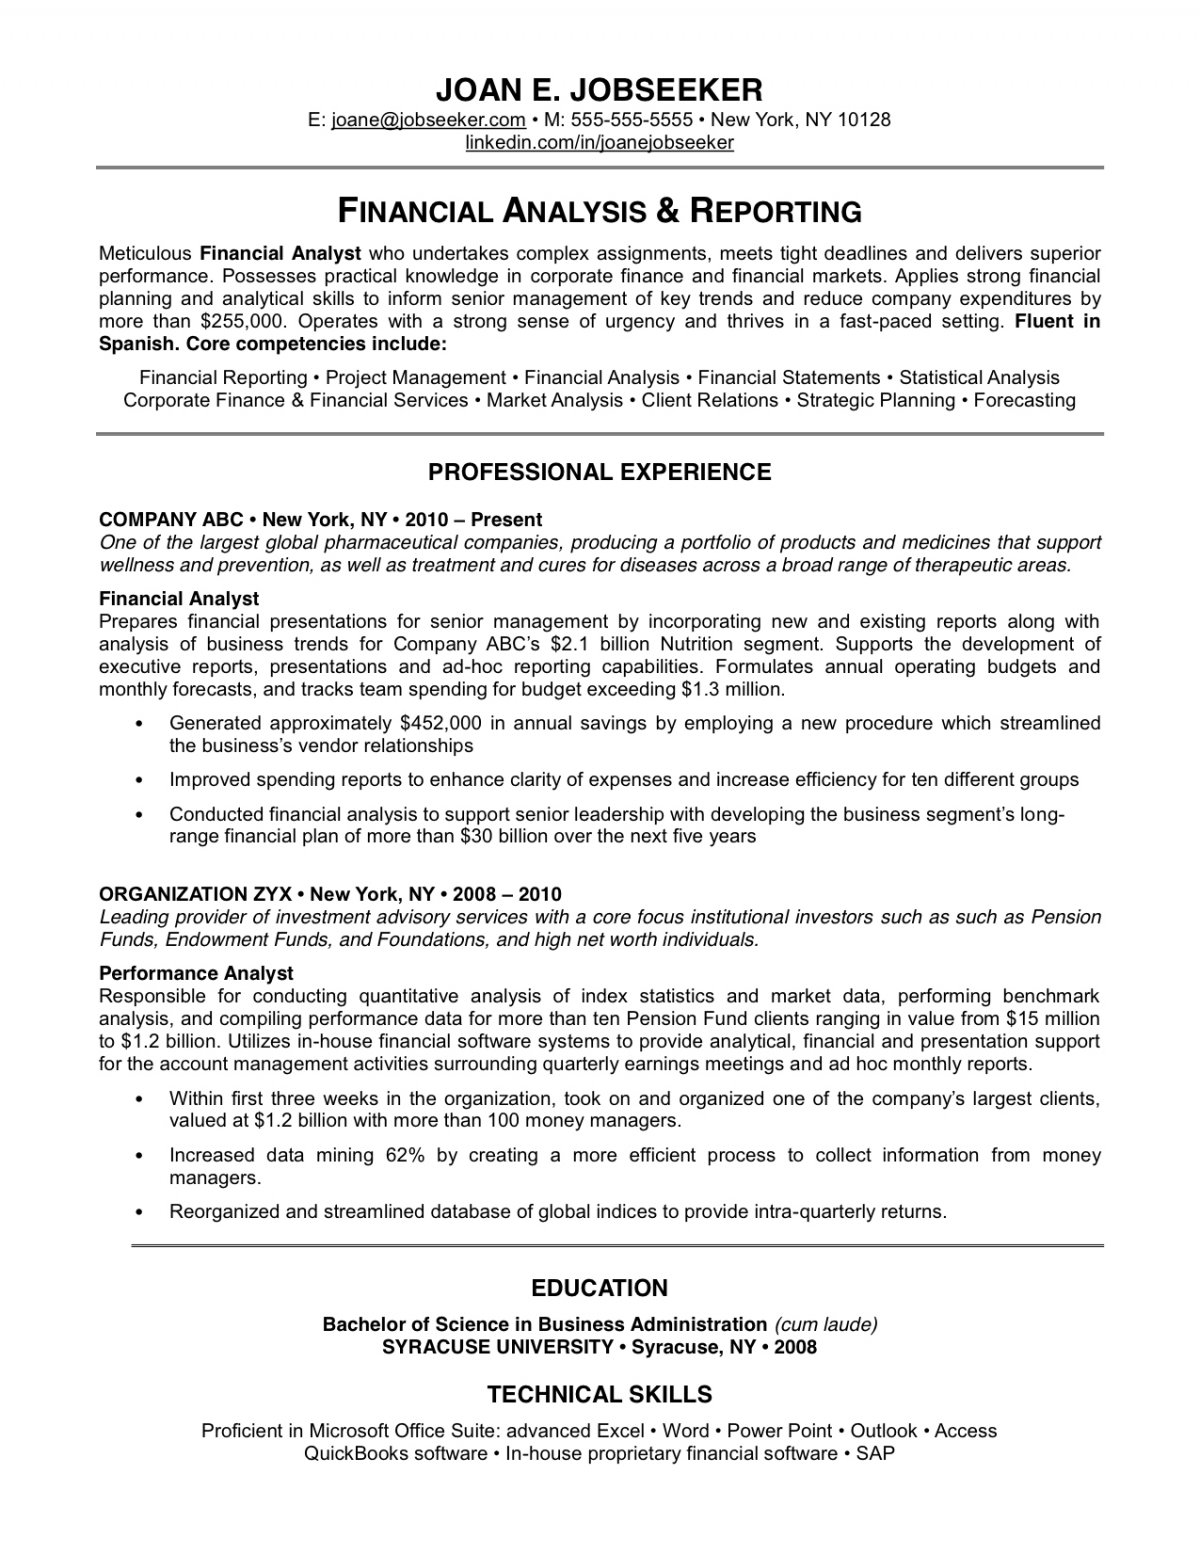 Example Of A Resume Image 19 example of a resume wikiresume.com